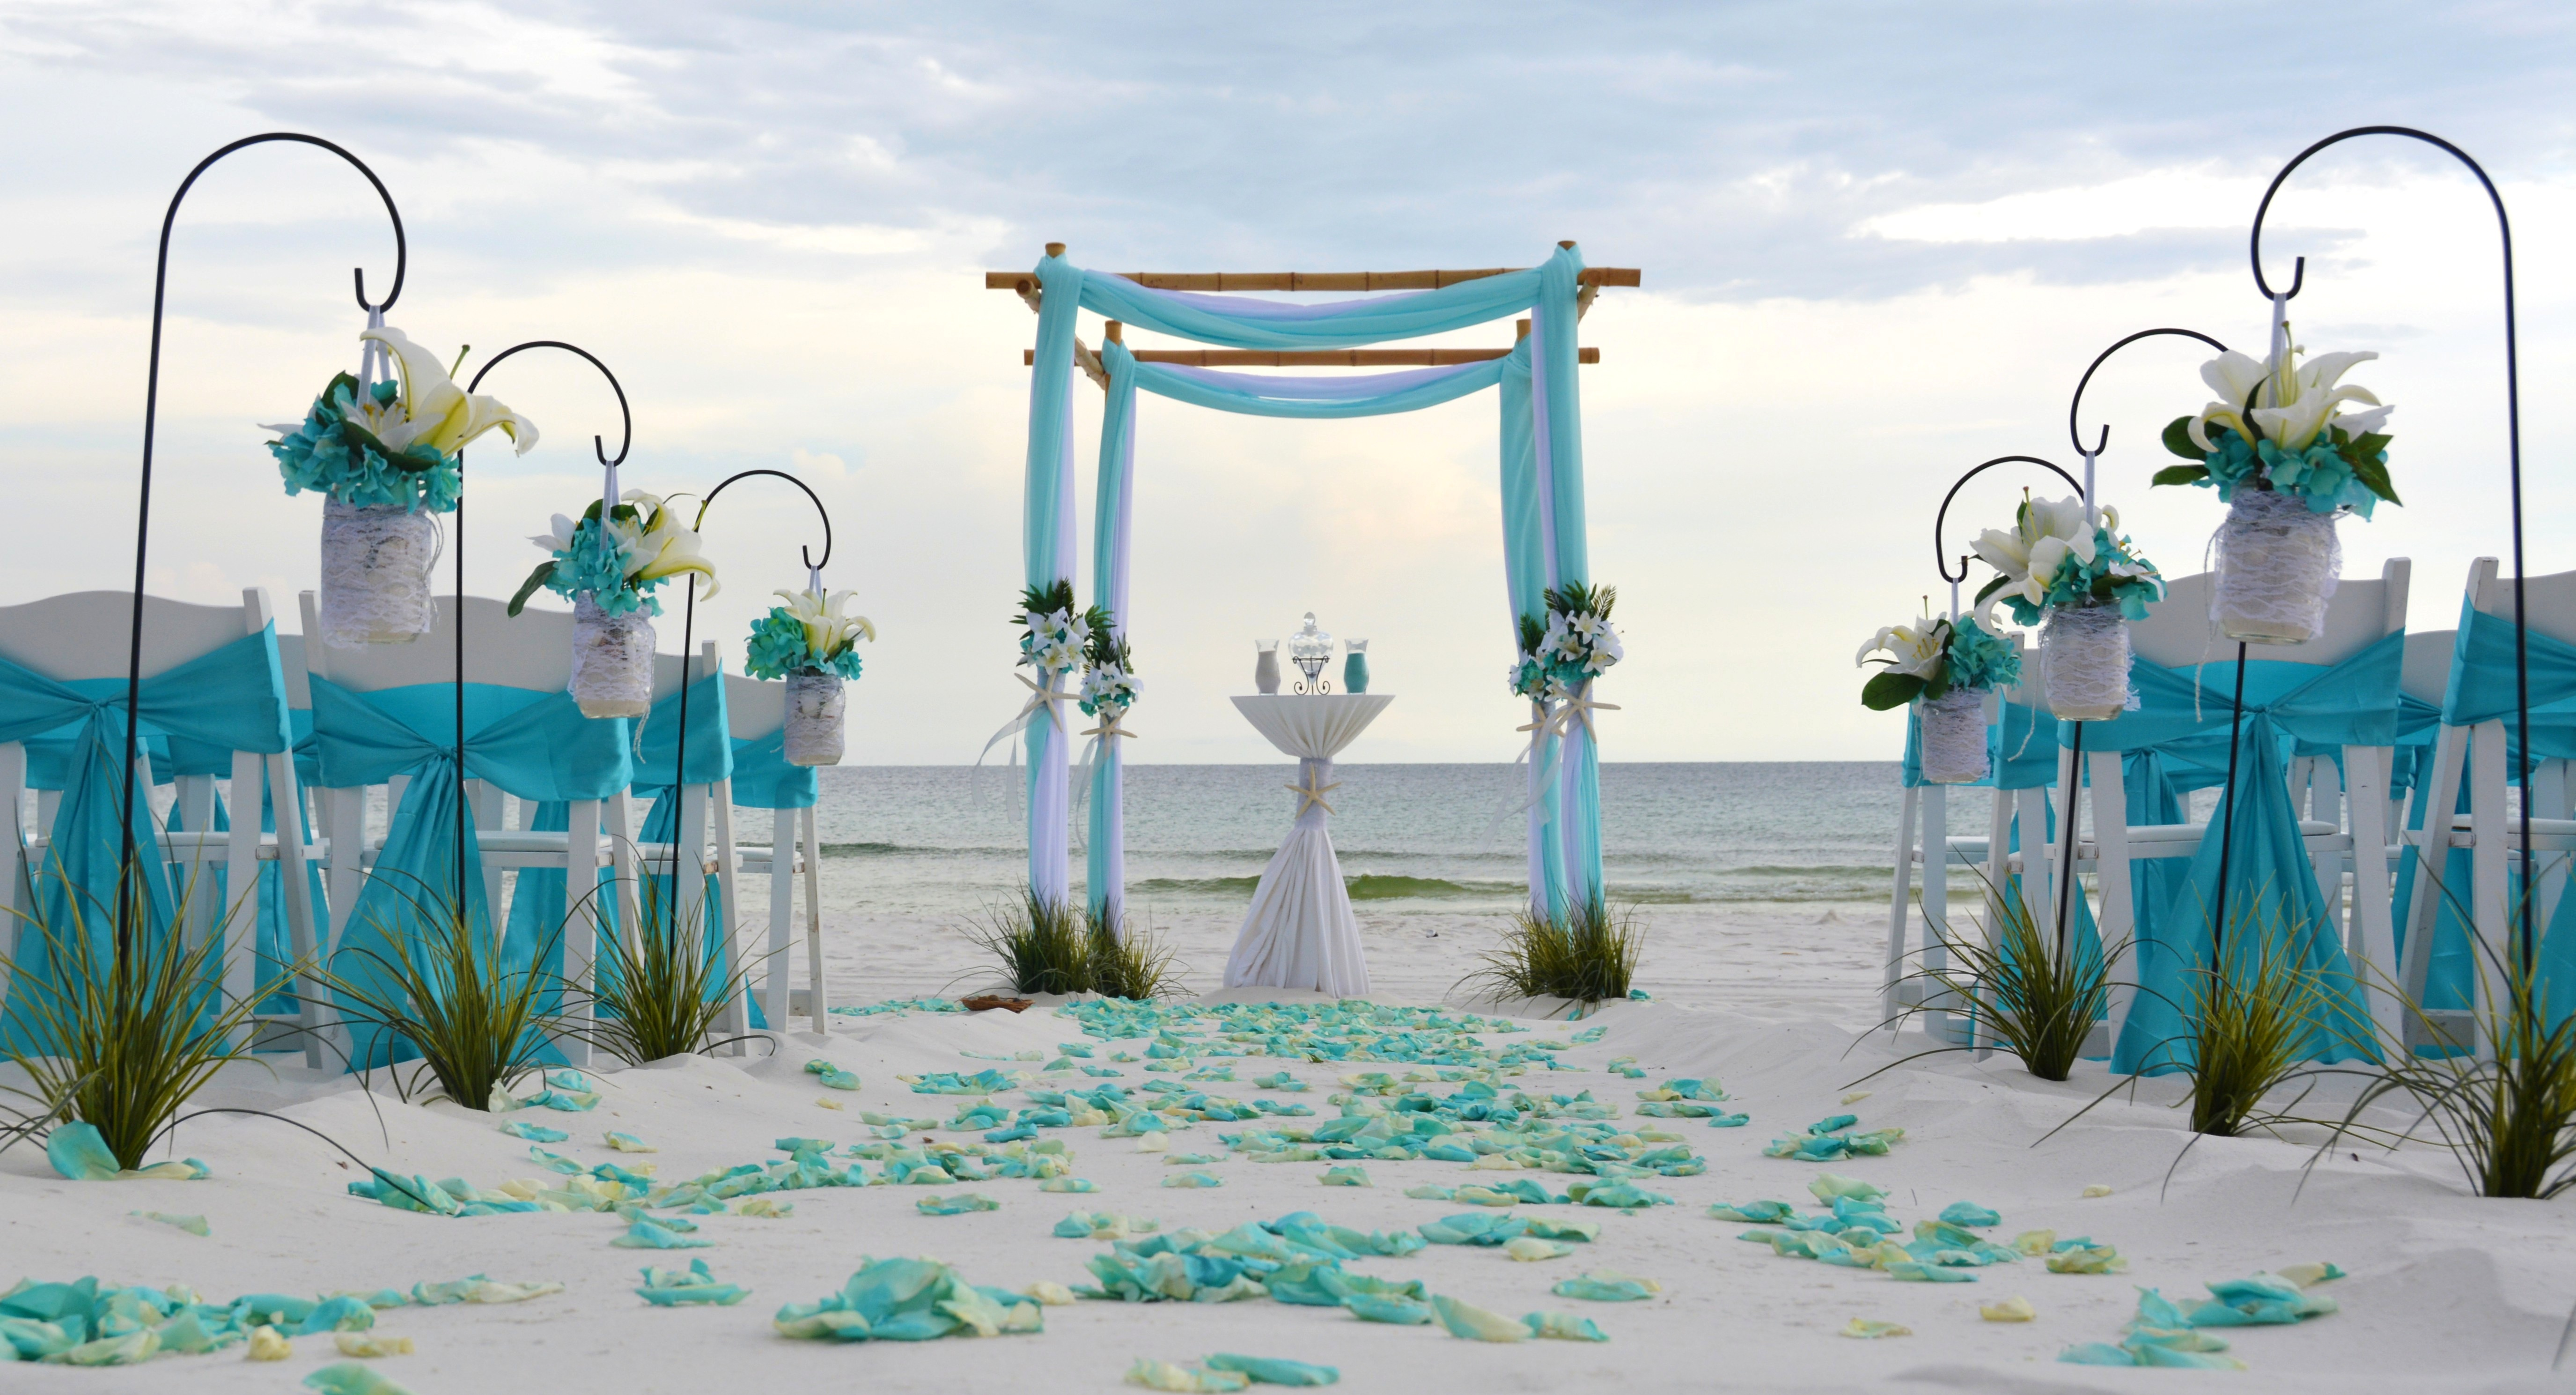 Tips for a successful beach wedding fernandina beach online for Best place for beach wedding